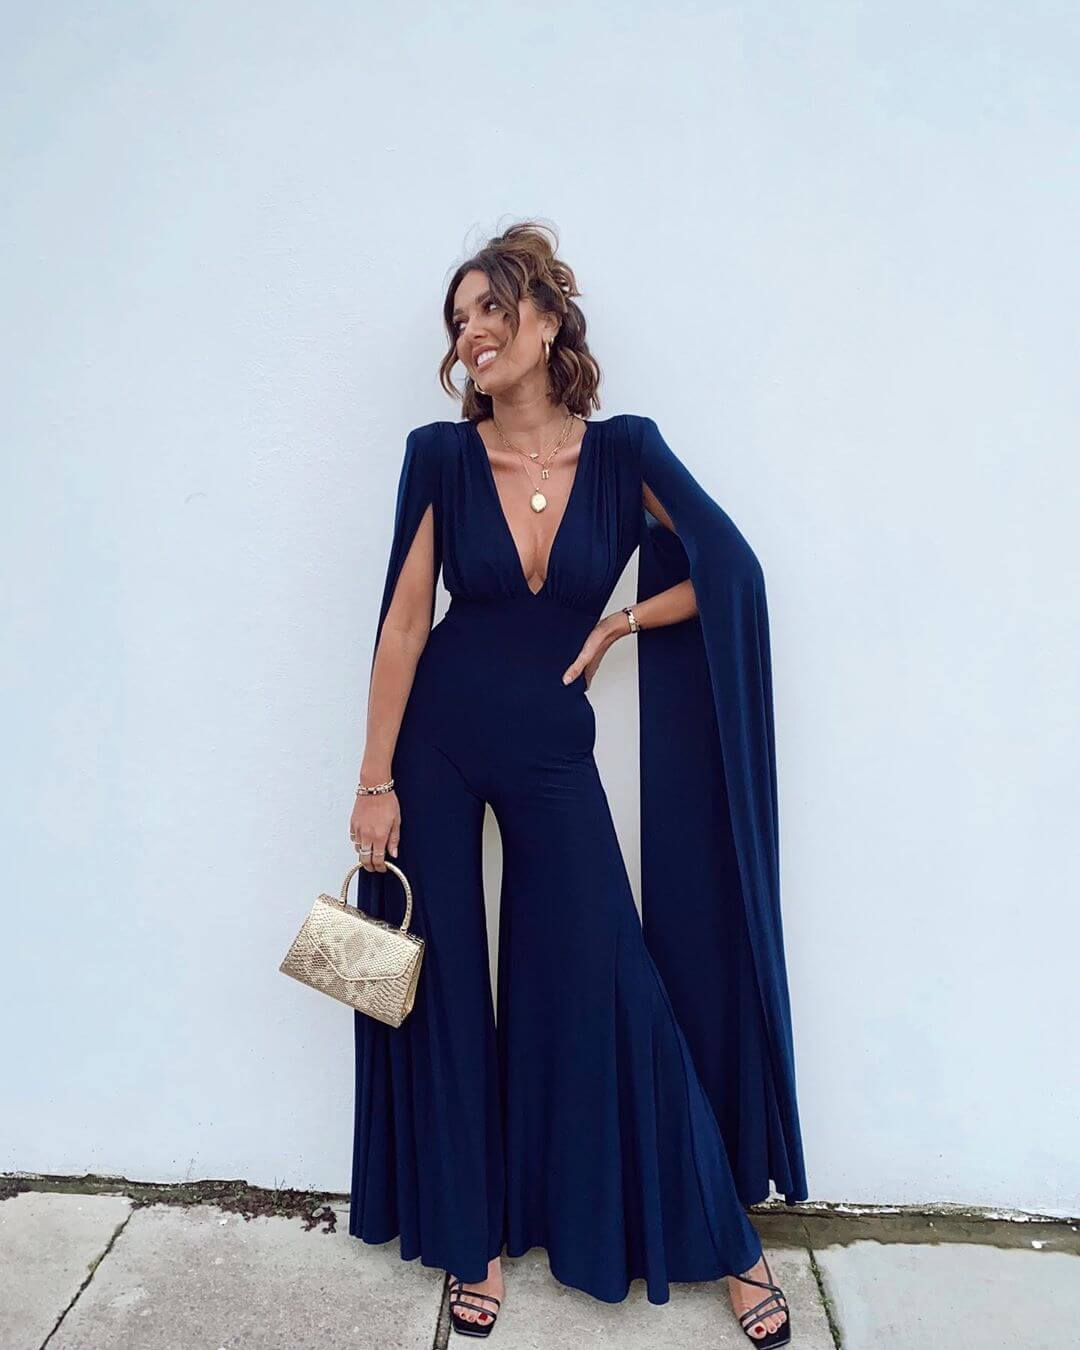 Model wears a navy plunge jumpsuit with cape details with a gold bag and nude shoes